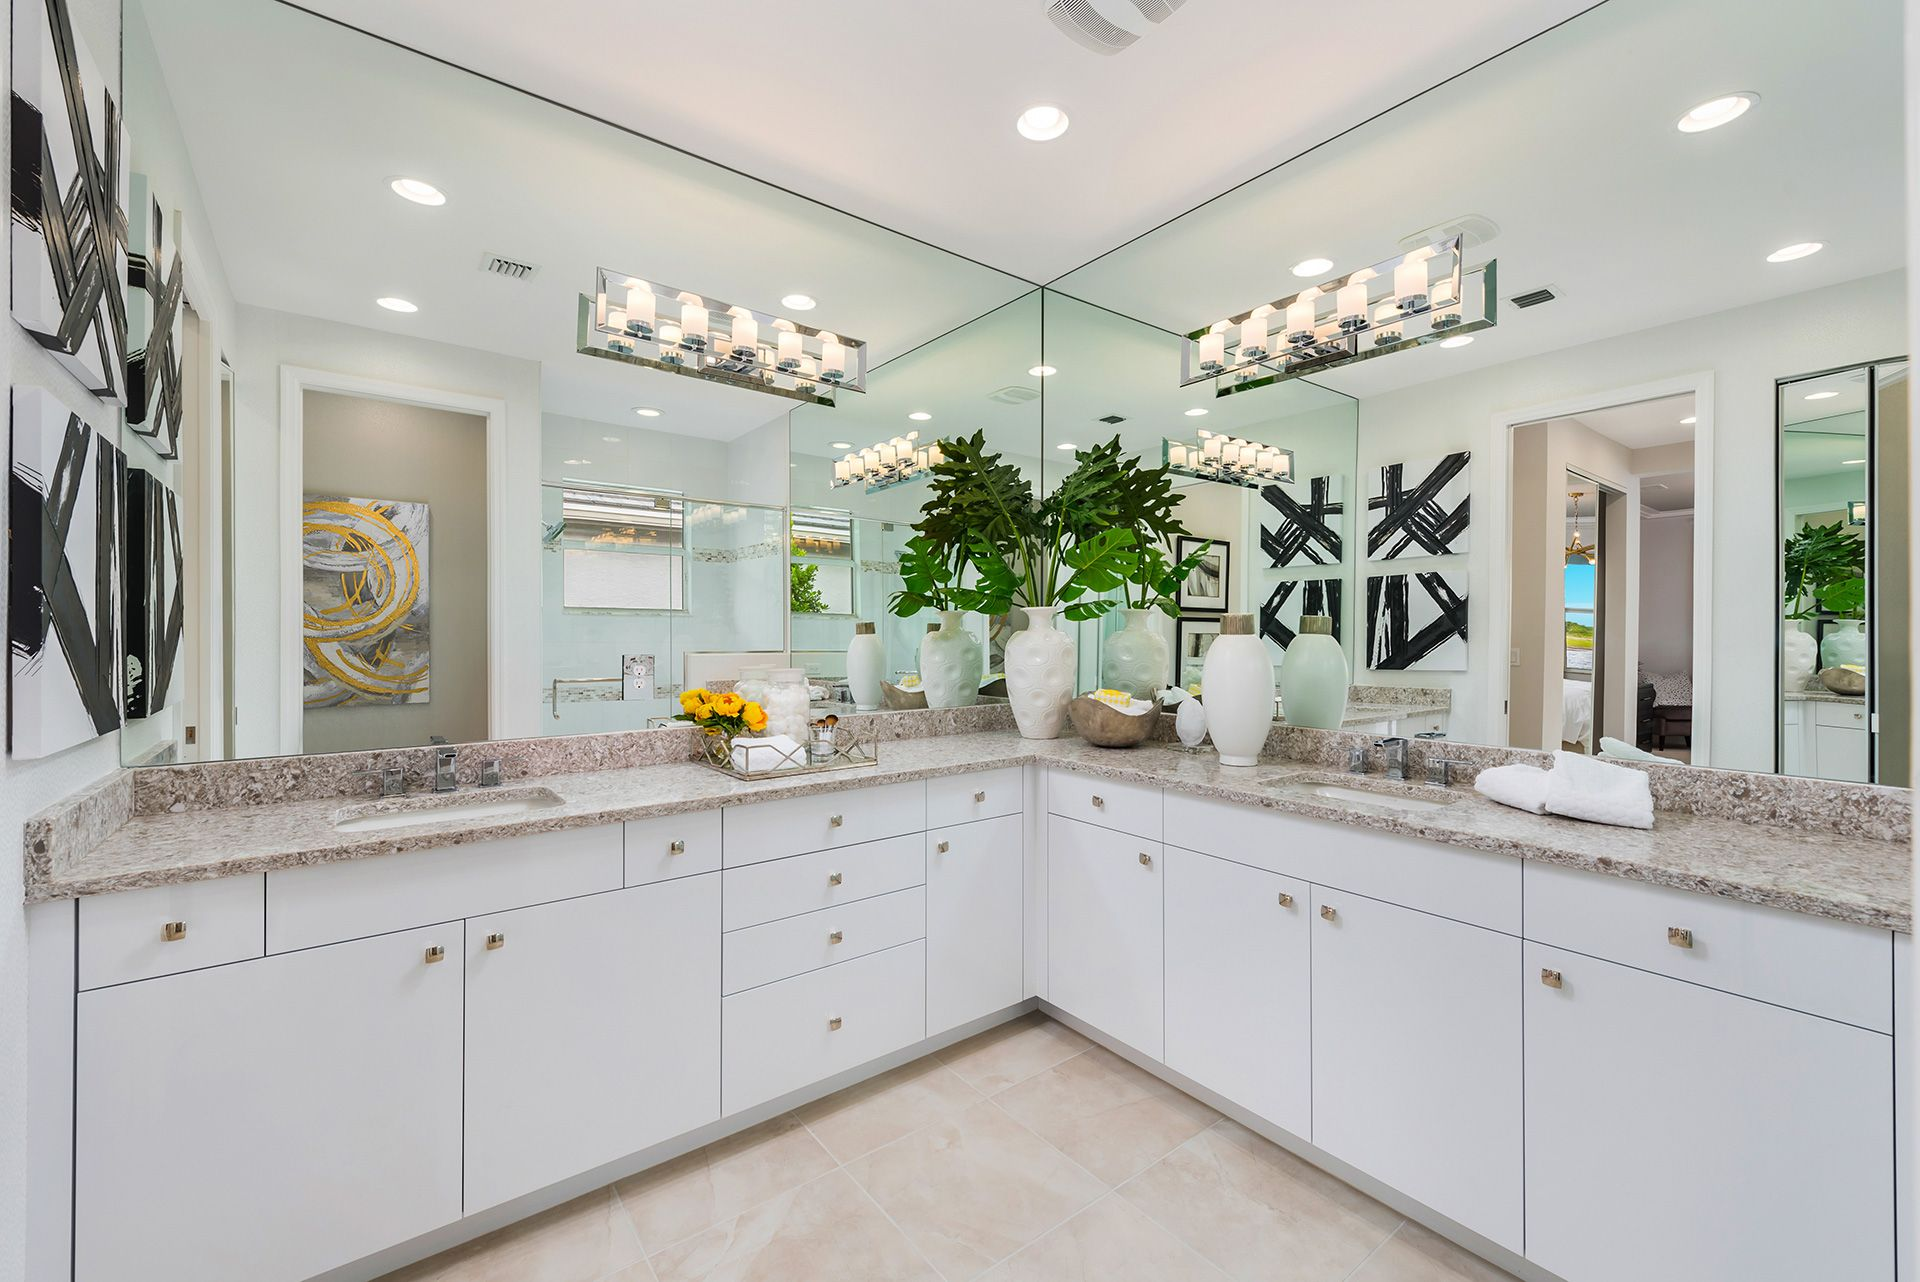 Bathroom featured in the Heron By GL Homes in Martin-St. Lucie-Okeechobee Counties, FL